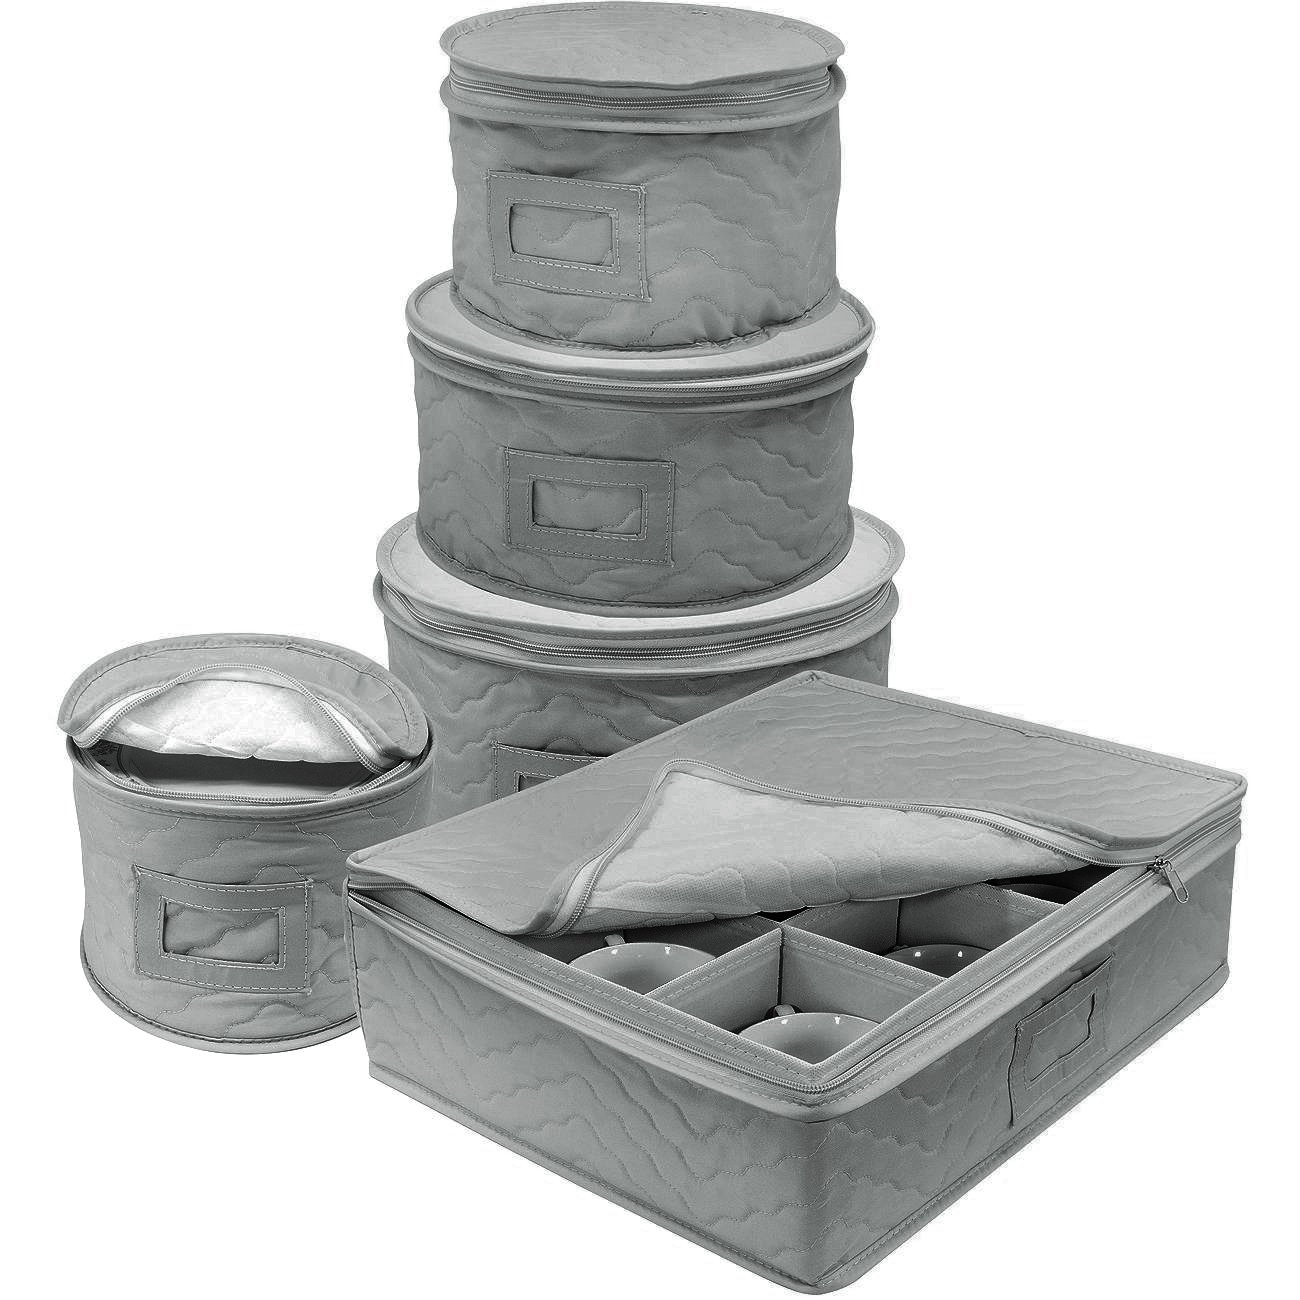 Sorbus Dinnerware Storage 5-Piece Set for Protecting or Transporting Dinnerware - Service for 12 - Round Plate and Cup Quilted Protection, Felt Protectors for Plates, Fine China Case (Gray) STRG-DSH-GRYA